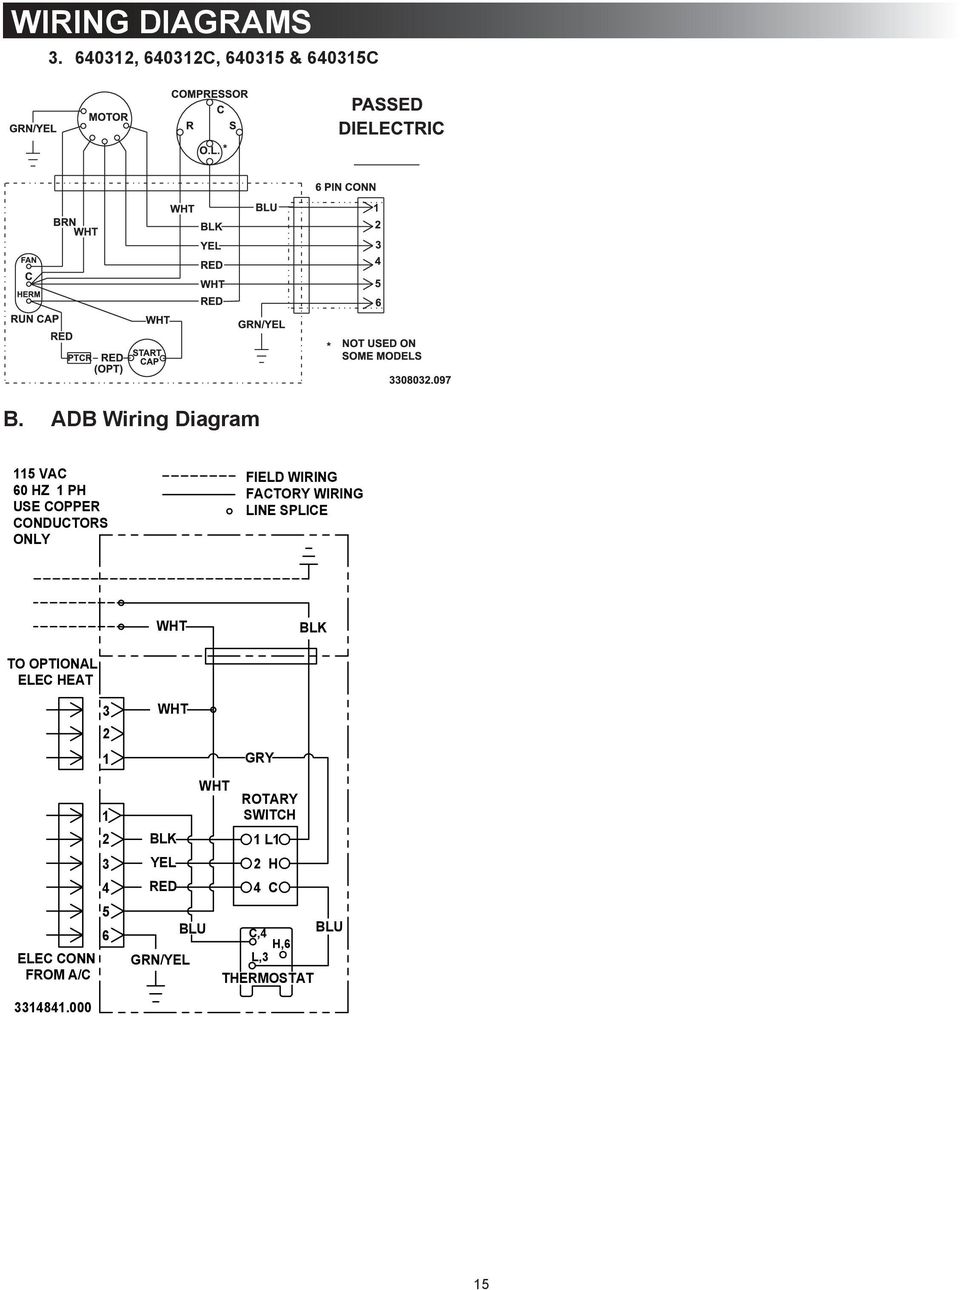 Dometic 640312 Manual Daewoo Korando Power Distribution Wiring And Circuit Diagram Array Air Conditioner B Pdf Rh Docplayer Net